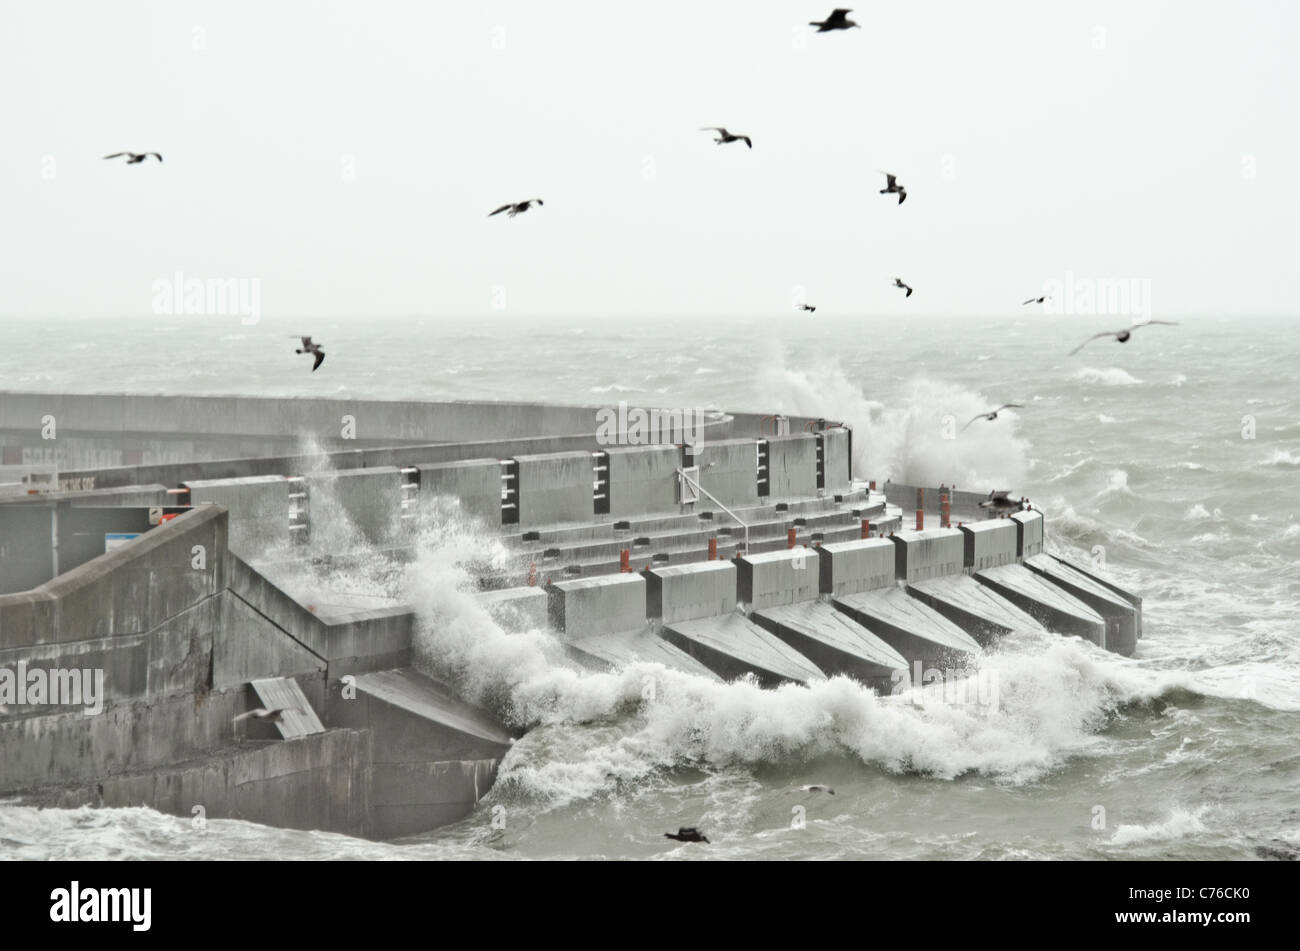 Gale force winds bring huge waves to the Brighton Marina, East Sussex. - Stock Image